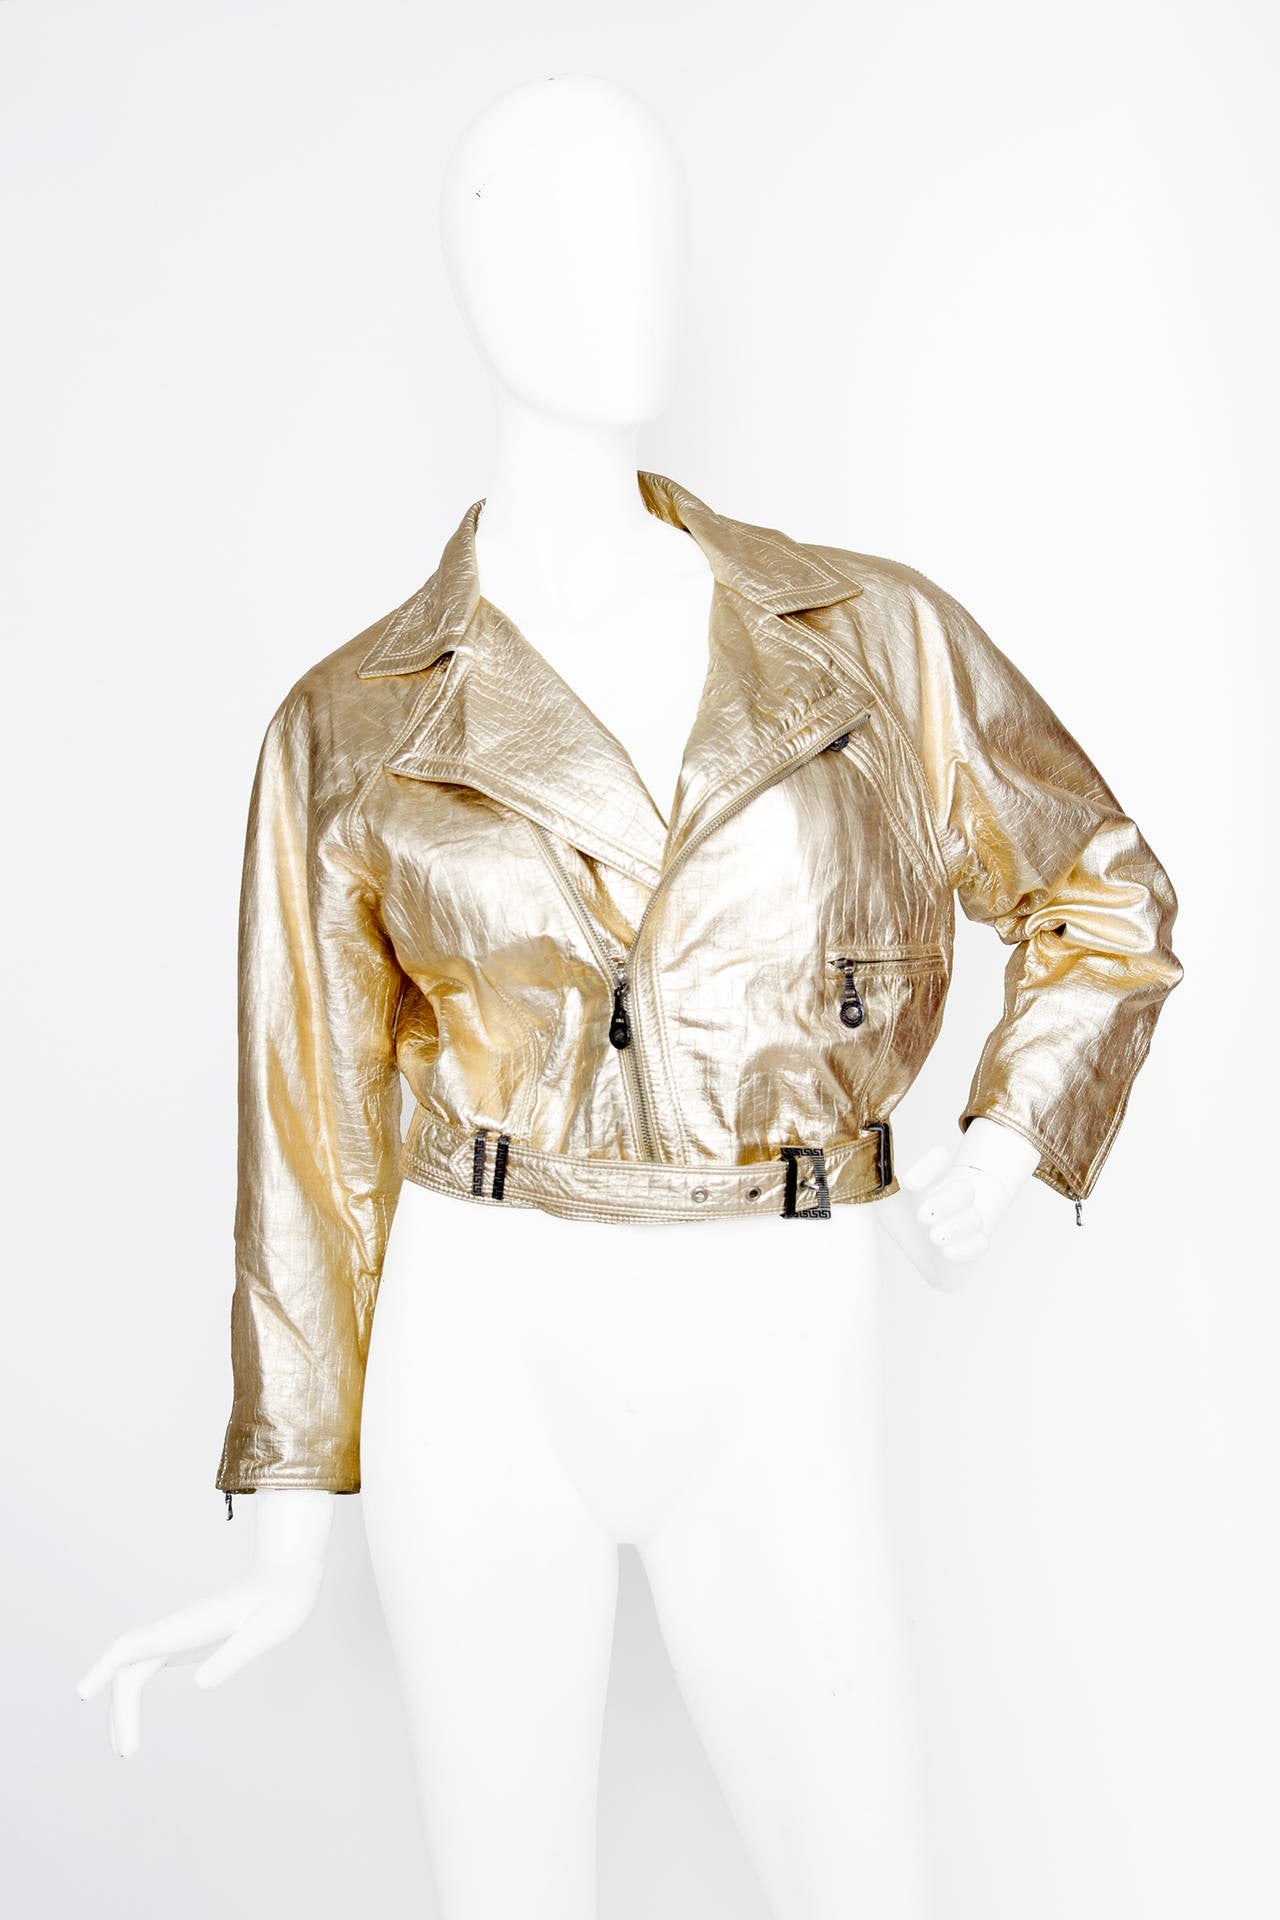 A 1980s Gianni Versace gold leather biker jacket with rounded shoulders and a cropped fit. The jacket has multiple pockets, zipper details on the cuffs (with medusa-head pulls) and comes with a matching waist belt with buckle closure. The jacket is